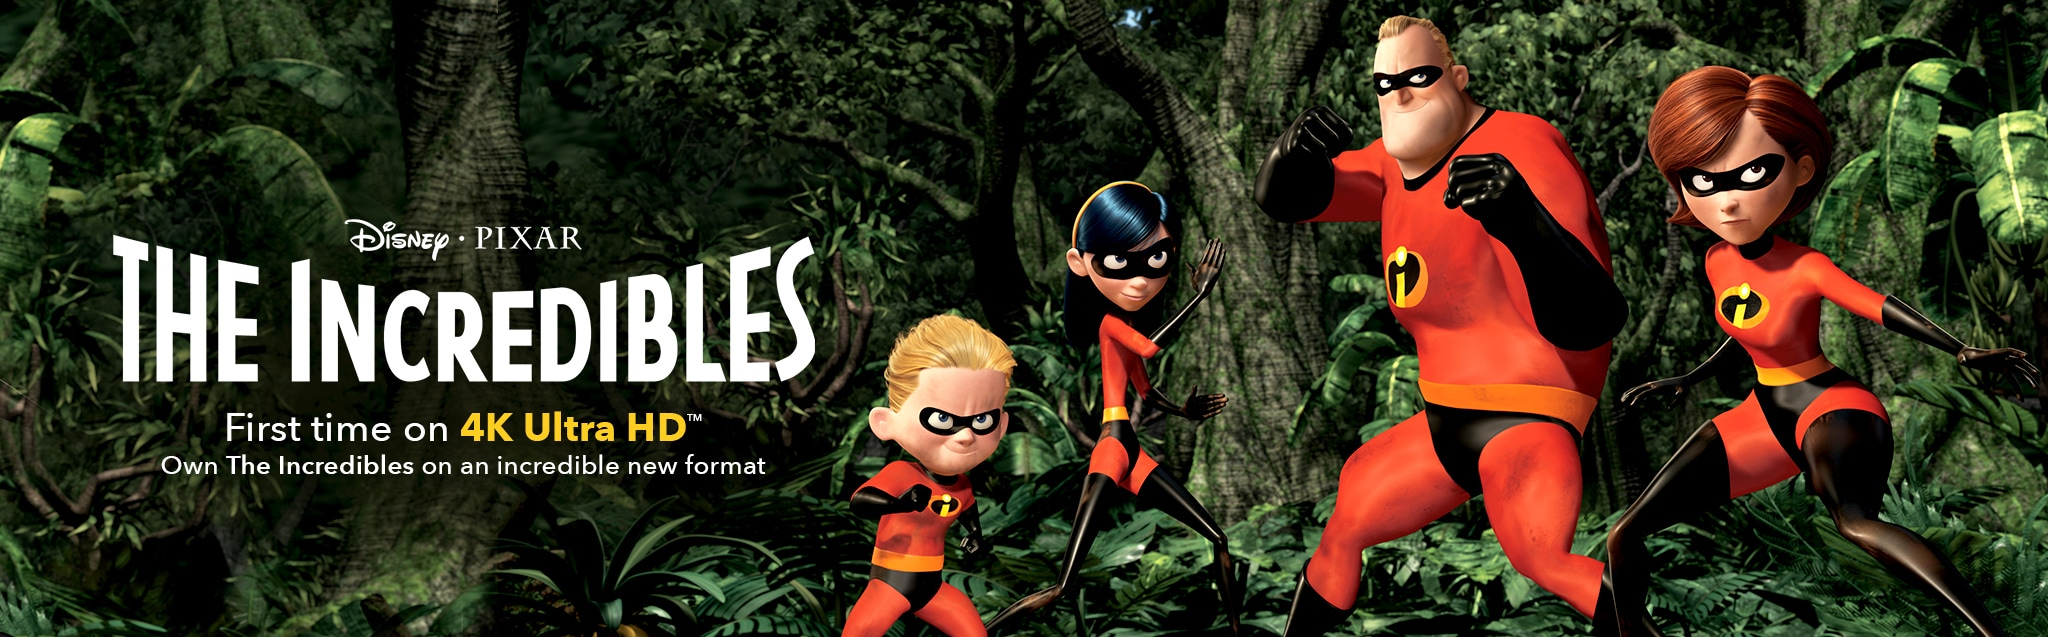 Disney Pixar the Incredibles First time on 4K Ultra HD Own the in an incredible new format.